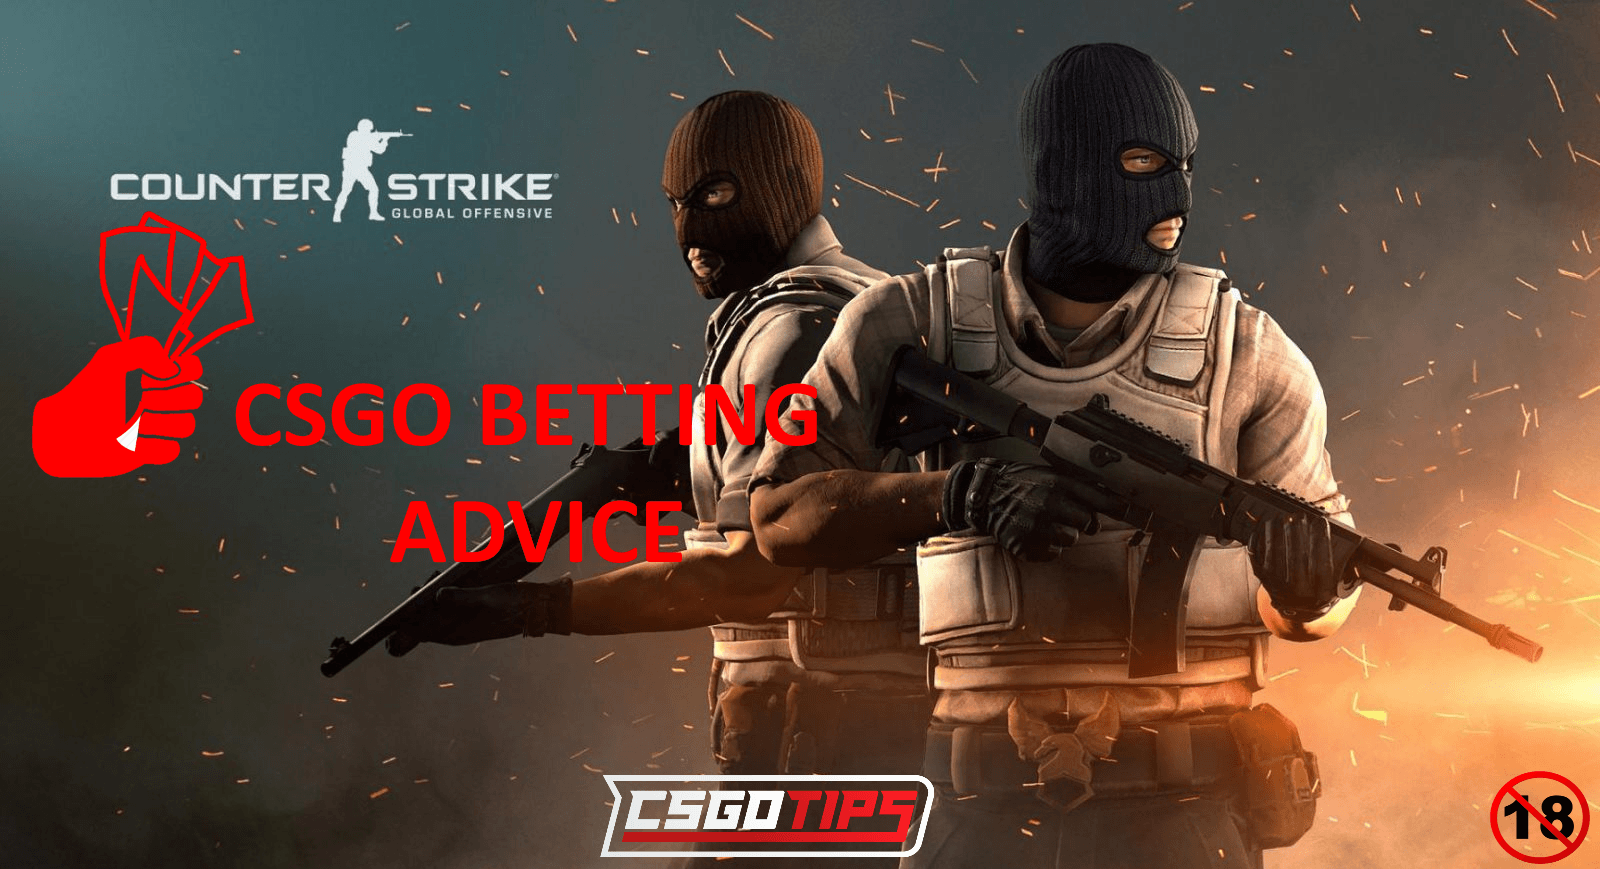 cs go big bettingadvice